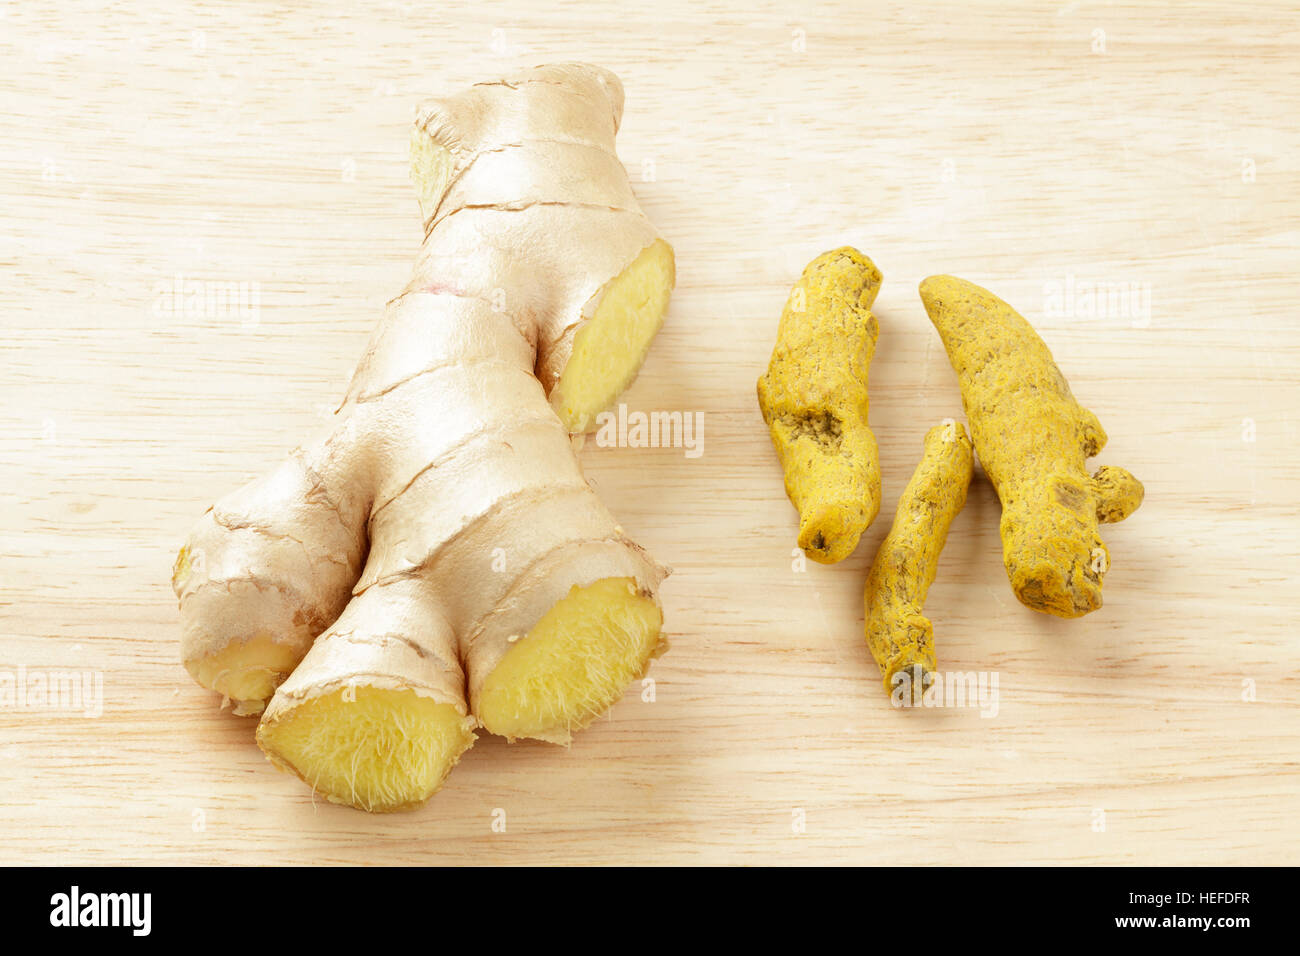 turmeric and ginger roots - Stock Image